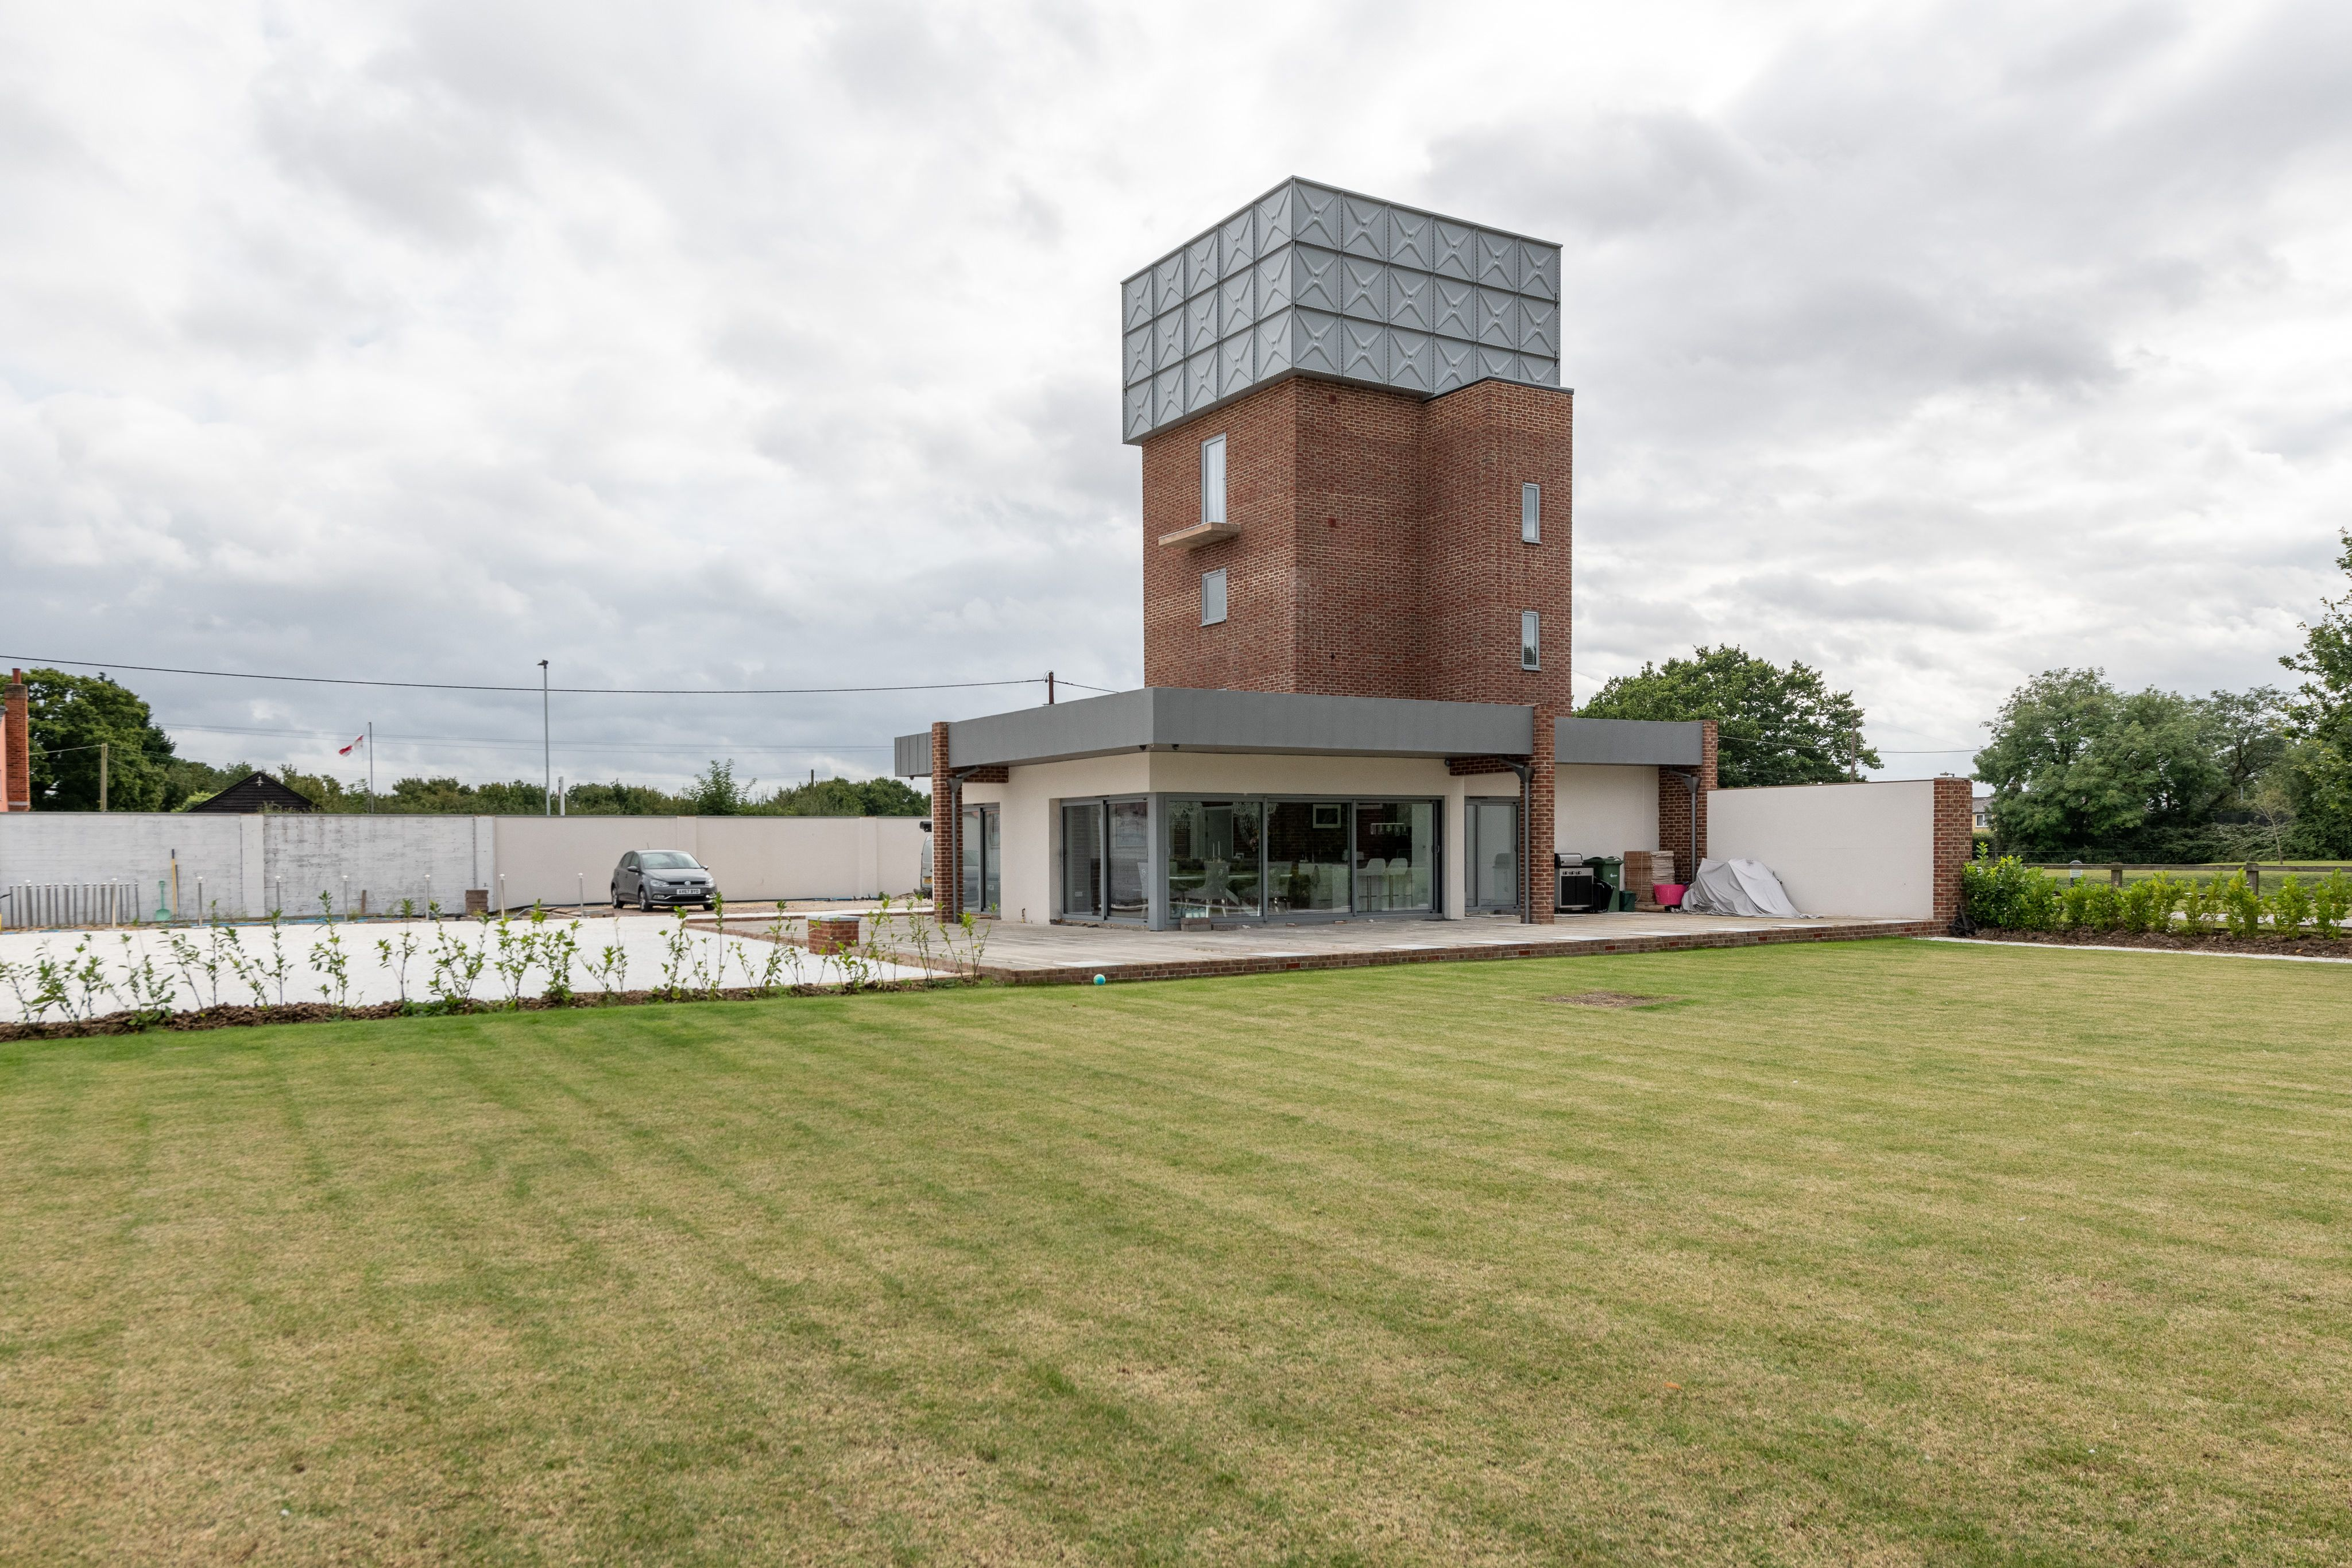 Converted water tower, once a WW2 prisoner of war camp, is for sale for £1.2 million in Essex